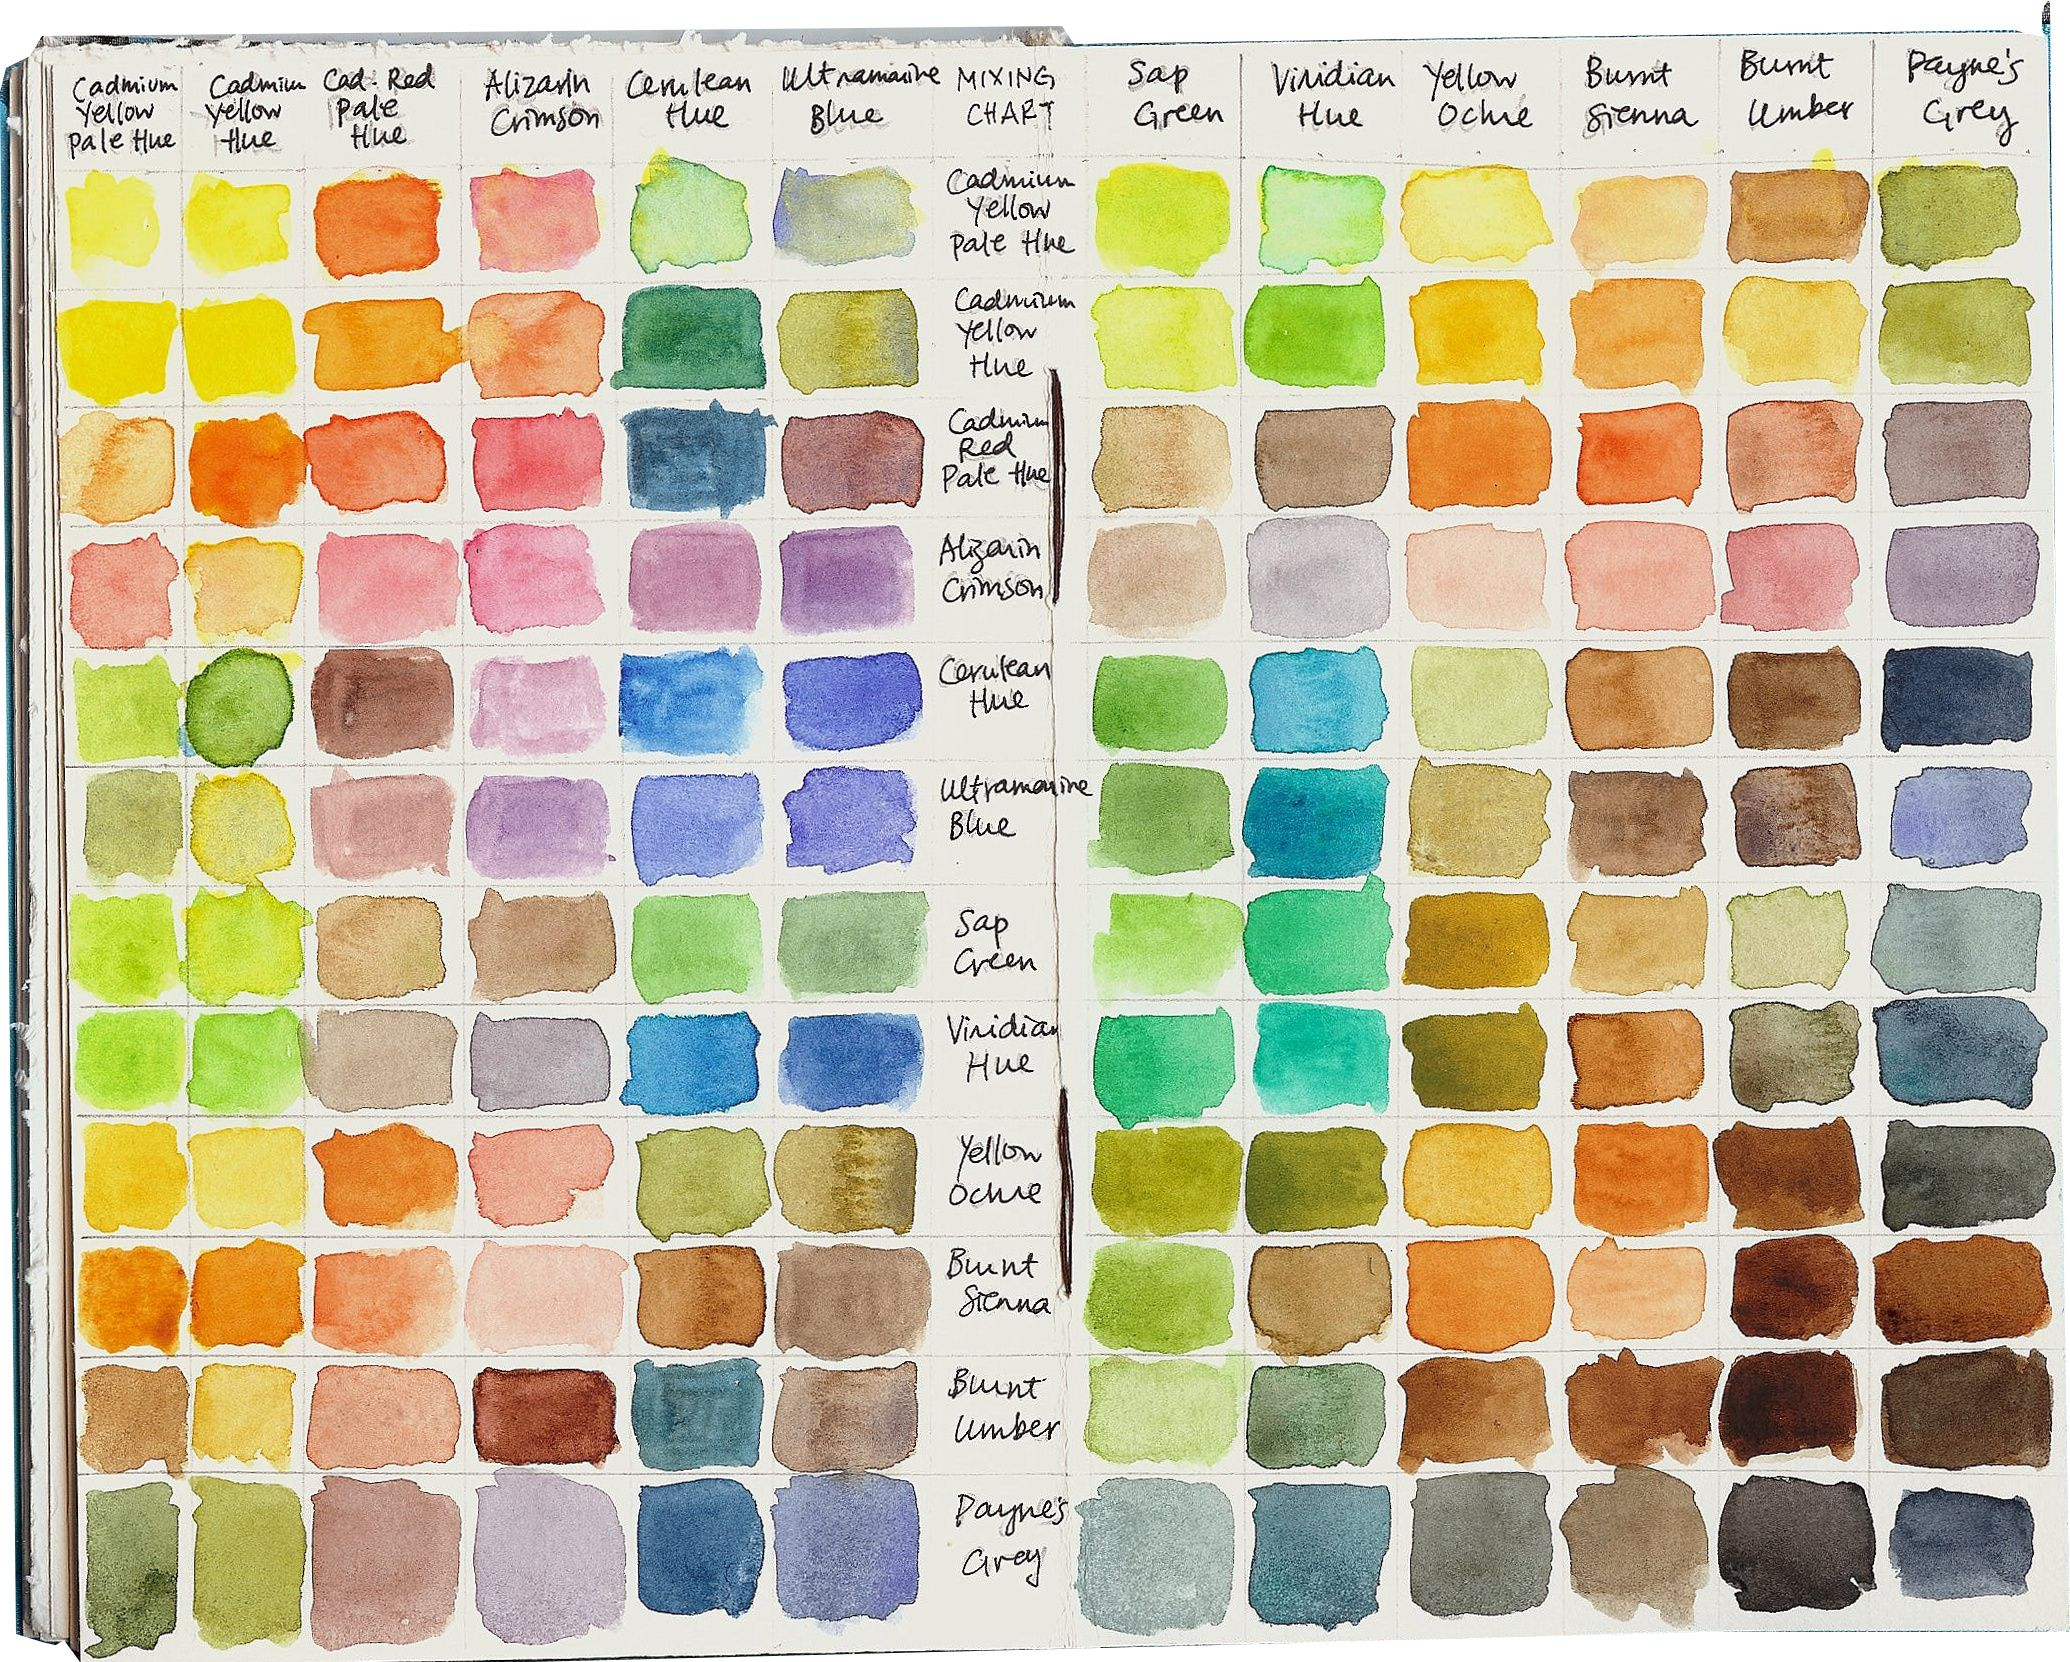 How Do I Measure The Colors Carlos Garcia Watercolor Mixing